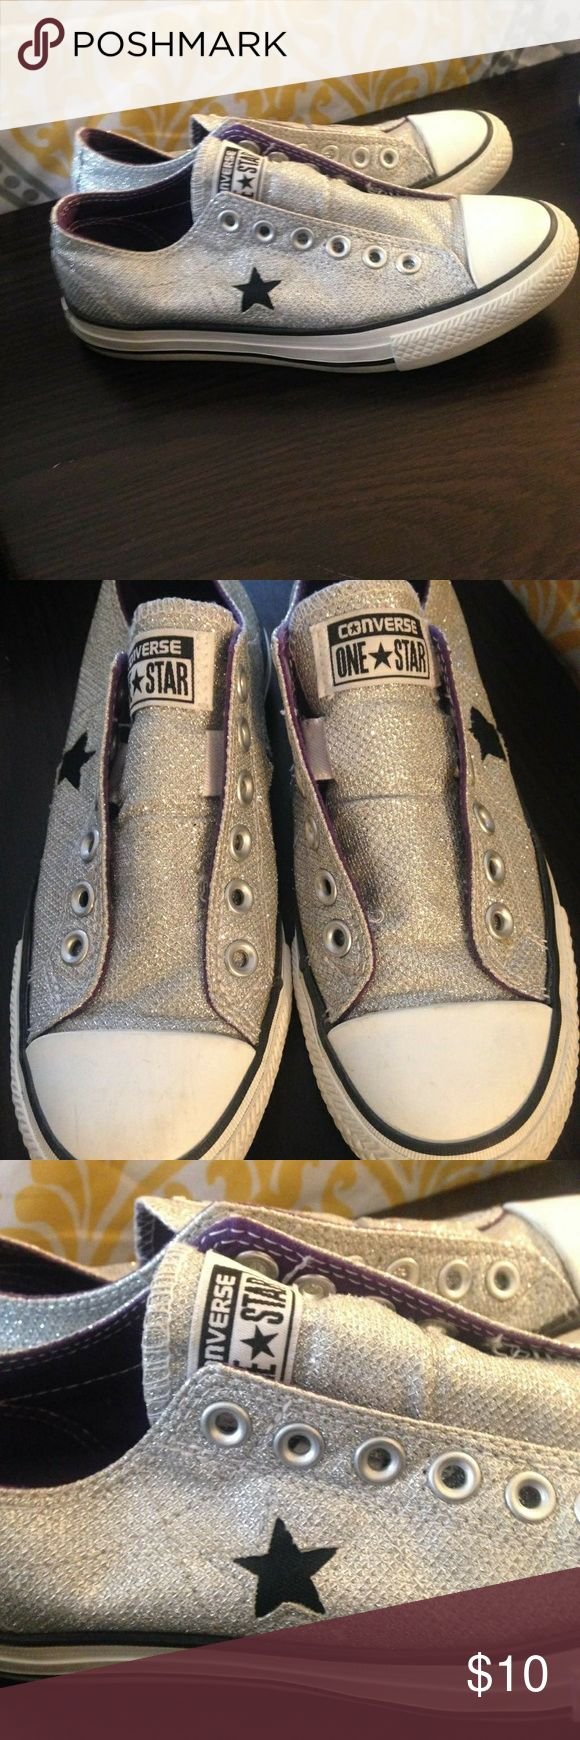 Silver Converse All Stars size 6 silver Converse All Stars. Good condition! Converse Shoes Athletic Shoes